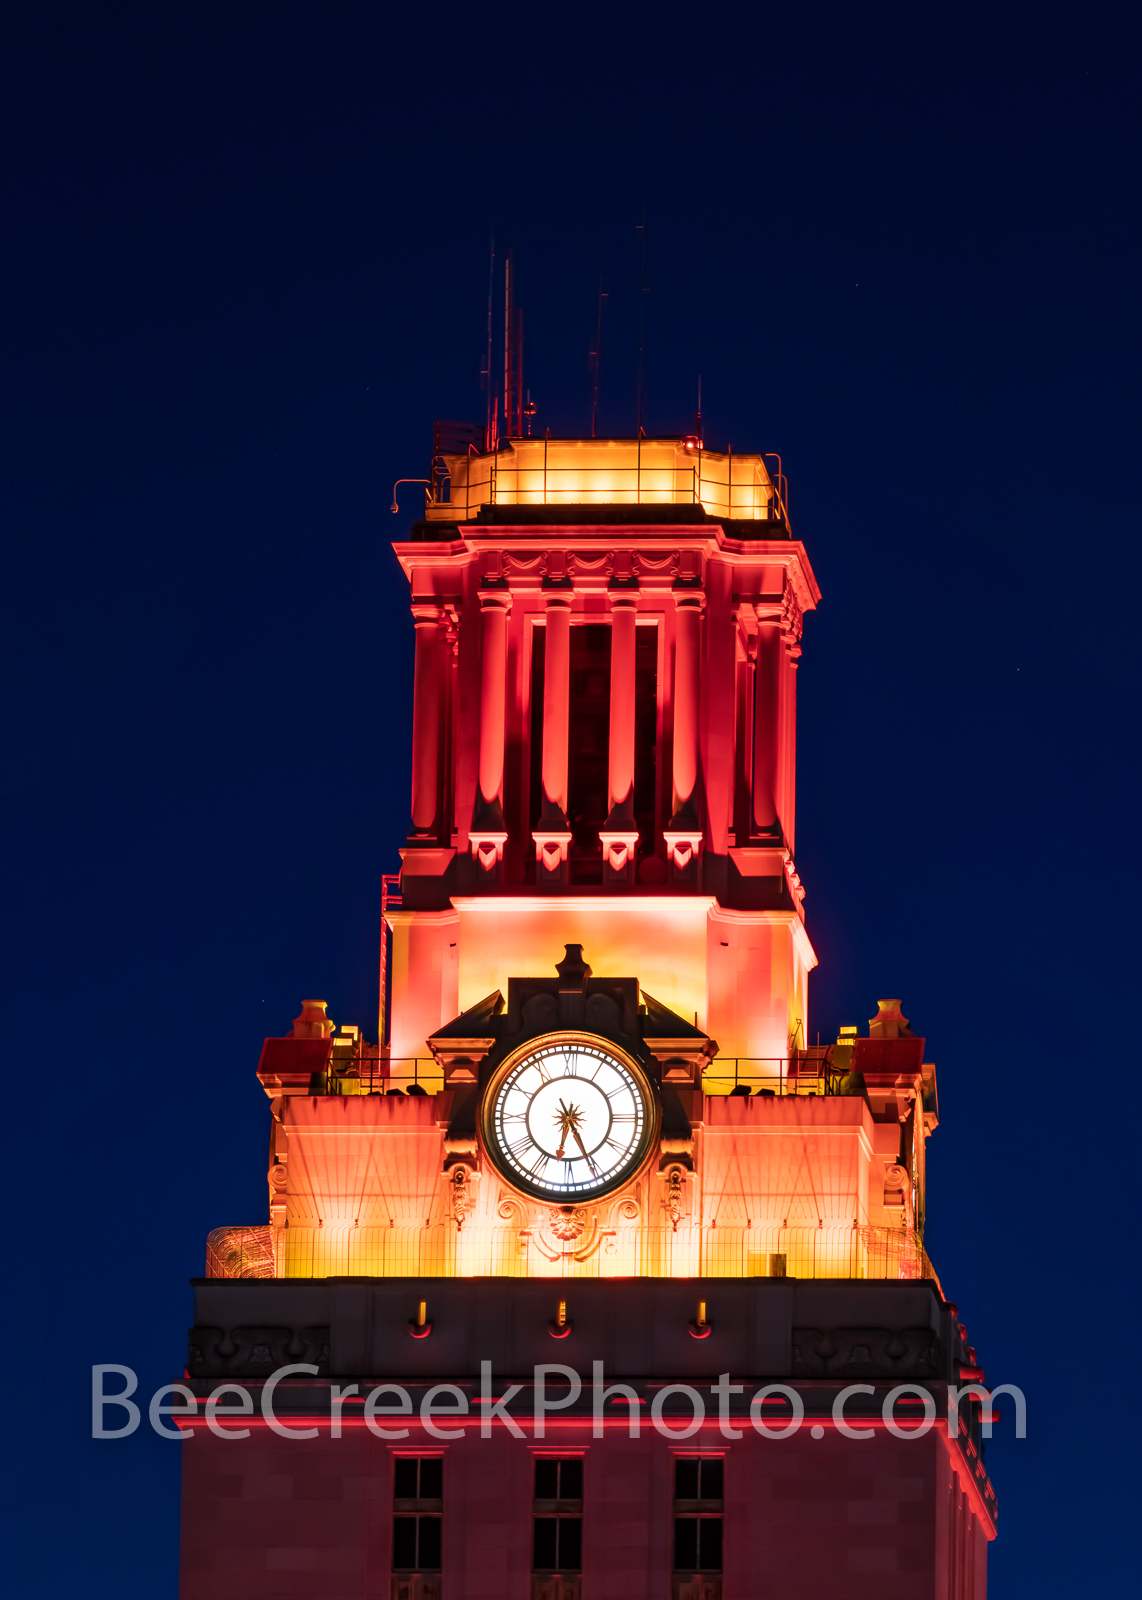 ut tower, texas, austin, austin texas, downtown austin, university of texas, ut austin, student union, college, sports, austin ut, ut, texas ut, research, students, texas university, landmark, flagshi, photo